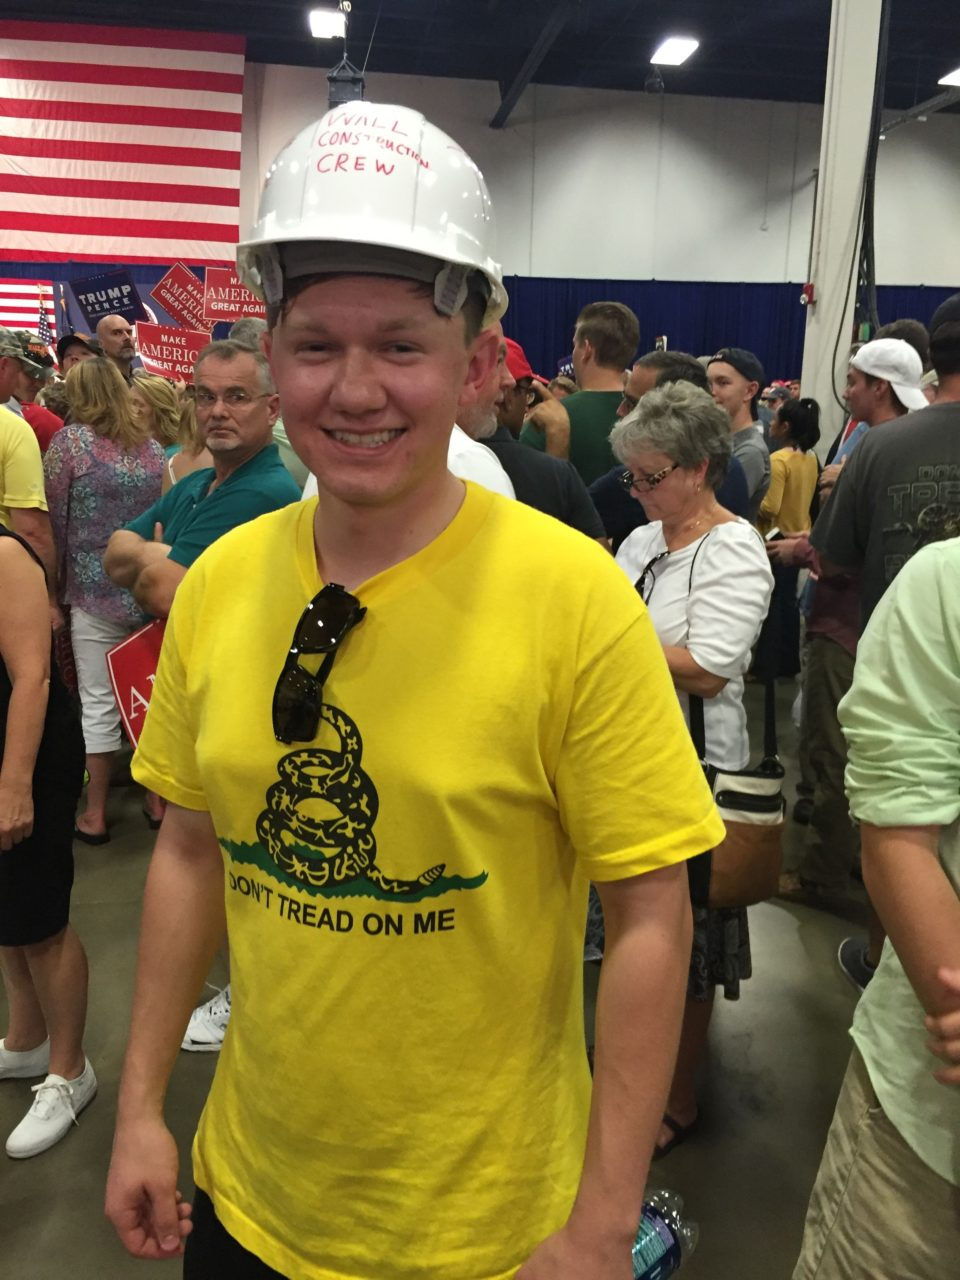 Millennial in hard hat